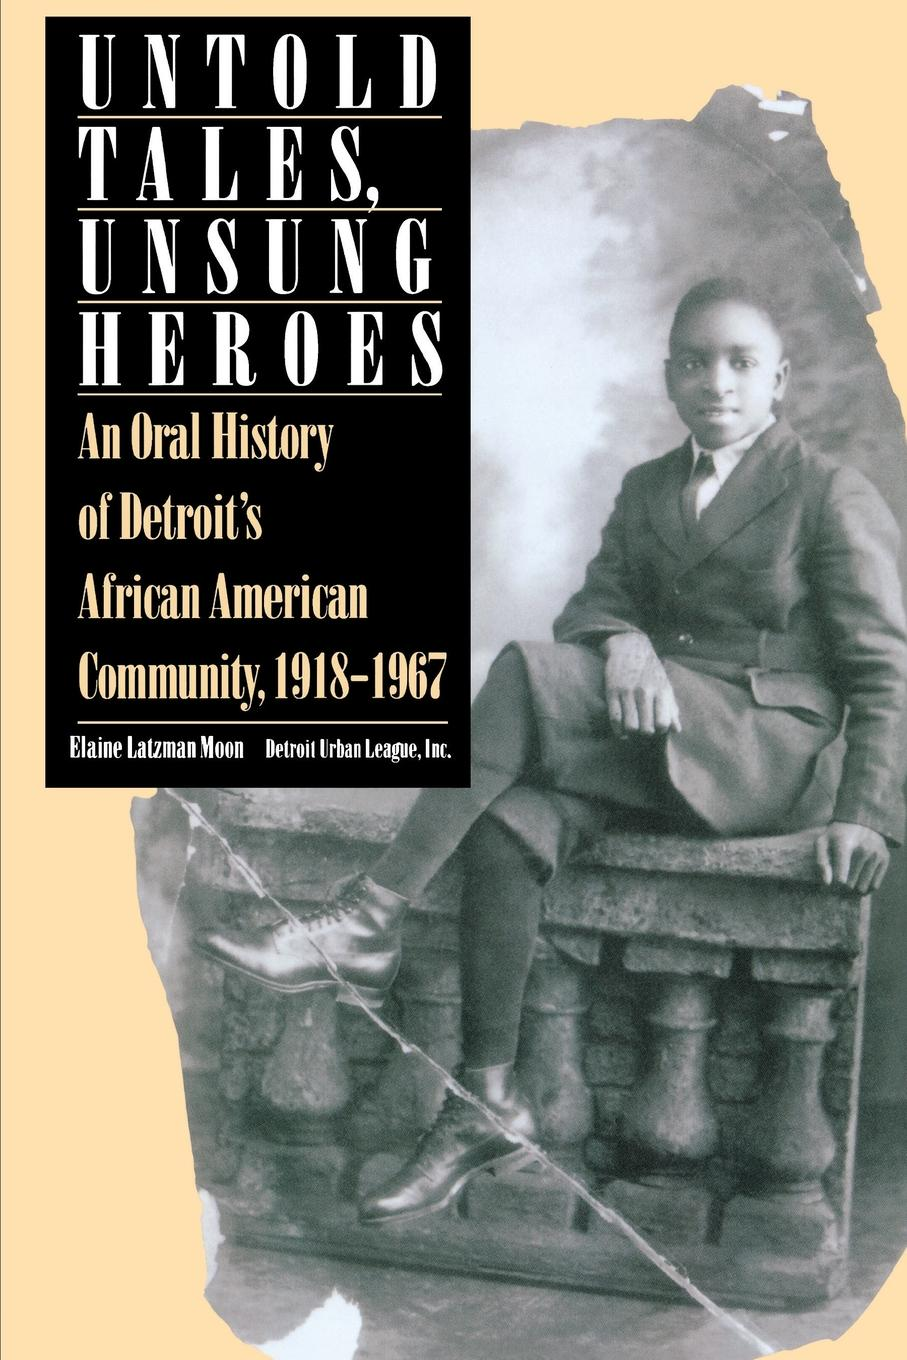 Elaine Latzman Moon Untold Tales, Unsung Heroes. An Oral History of Detroit.s African American Community, 1918-1967 world war z an oral history of the zombie war